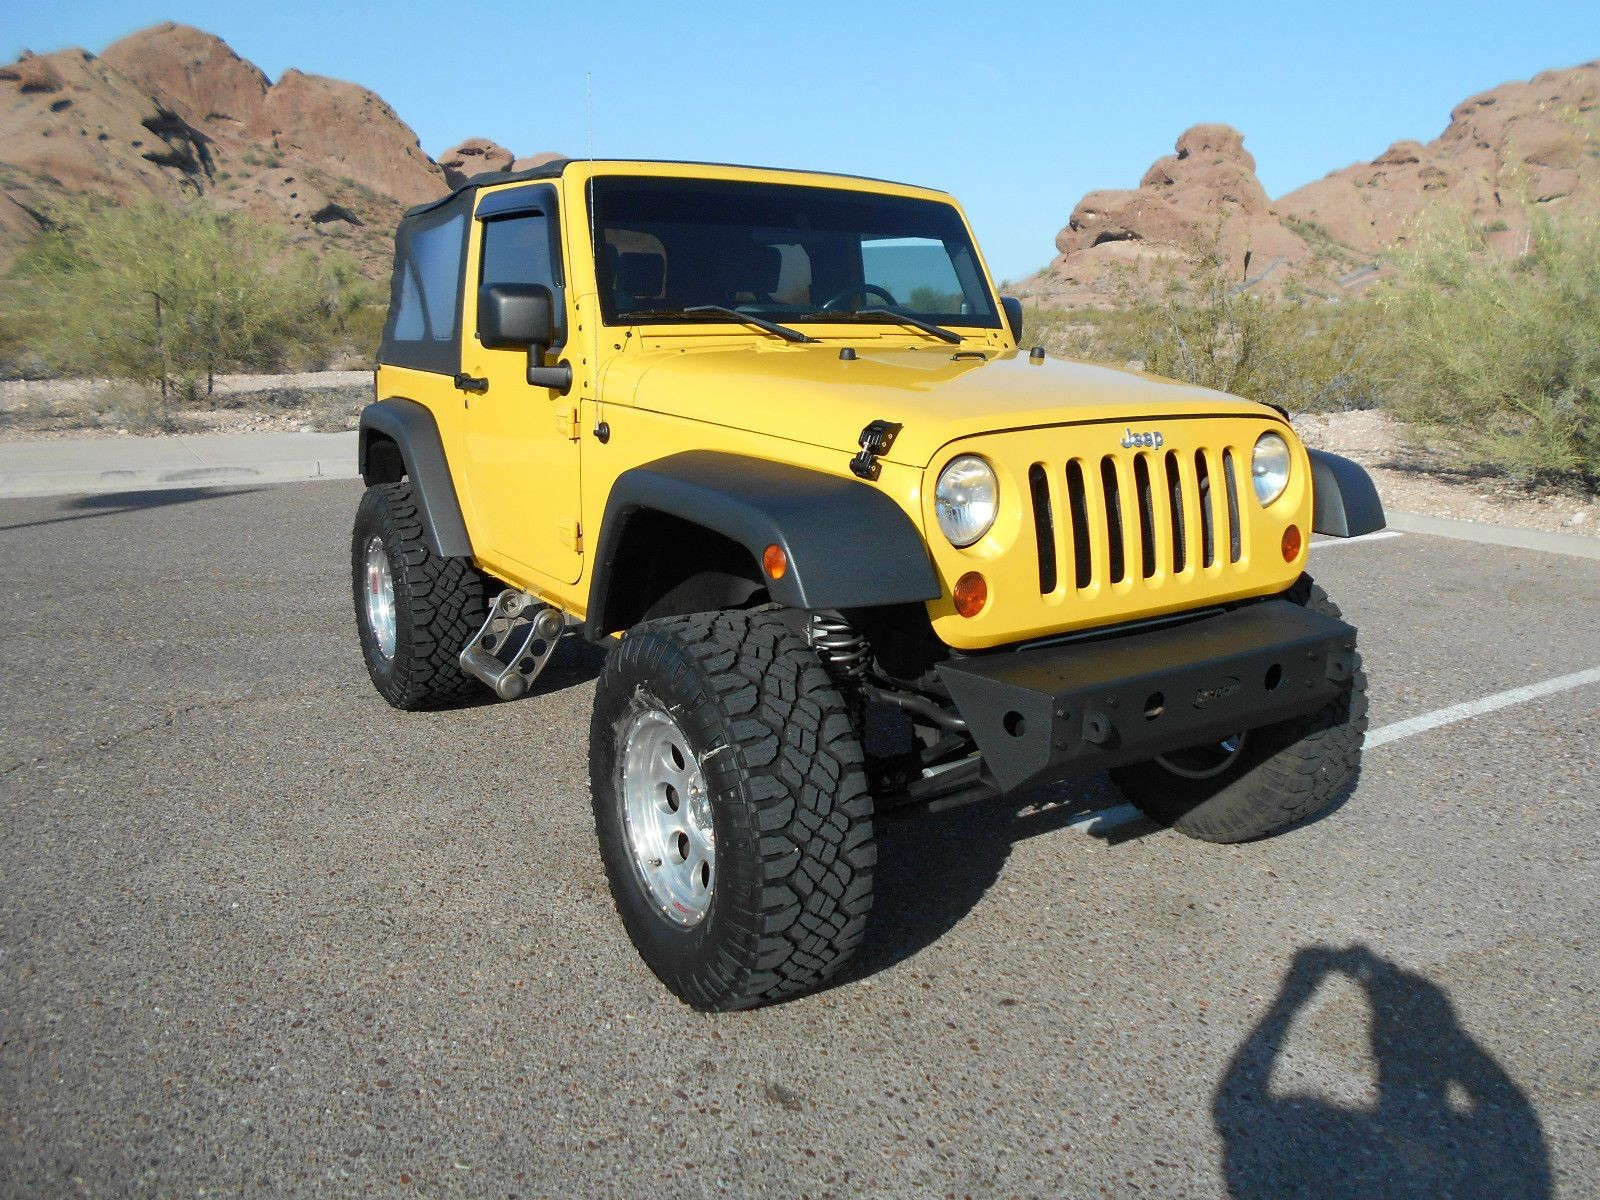 1995 Jeep Wrangler Parts Diagram Car Brand Auctioned Jeep Wrangler 2dr 4×4  Trail Rated